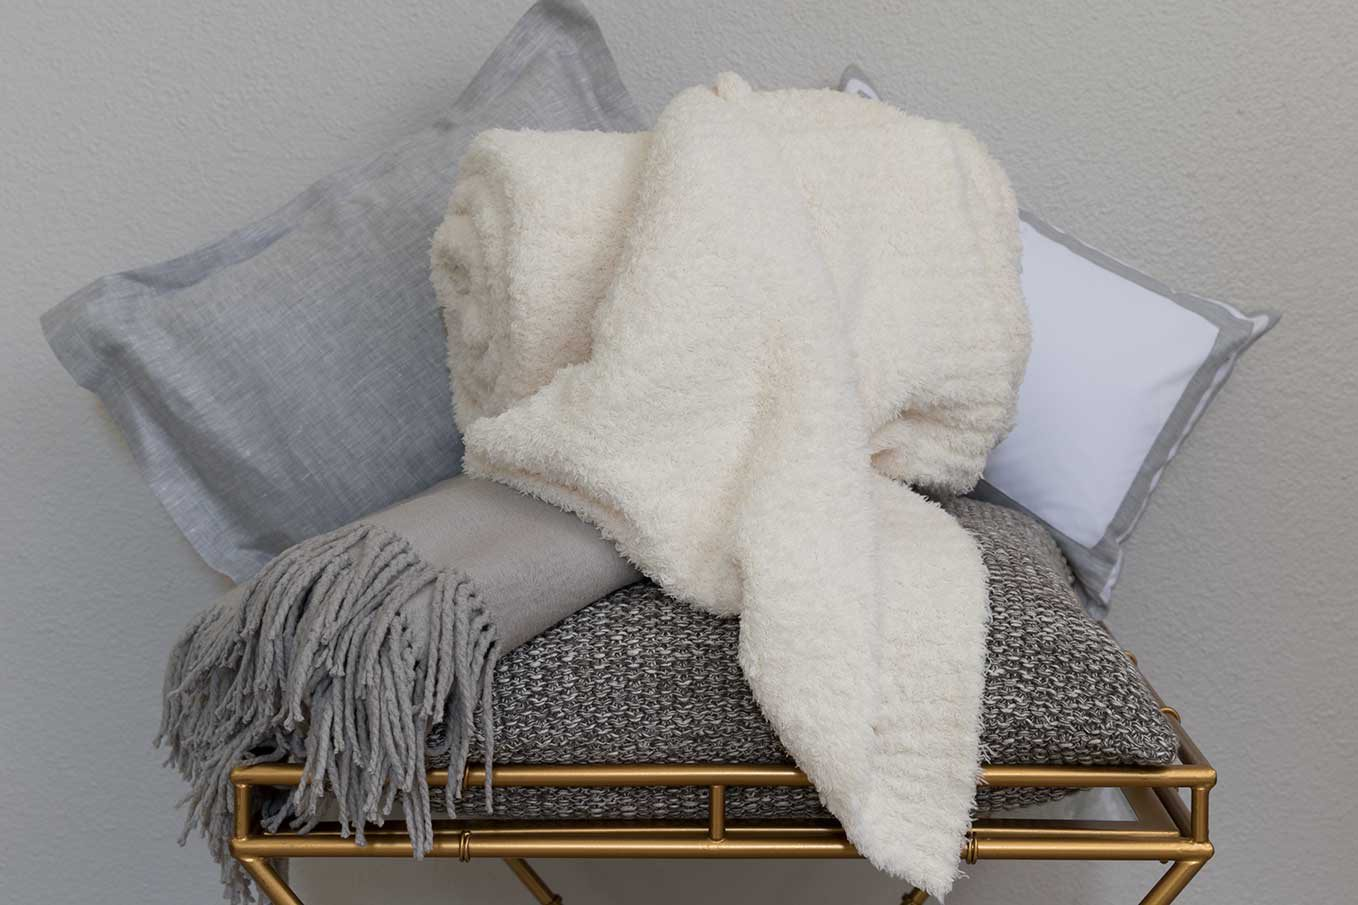 linen and pillows piled up